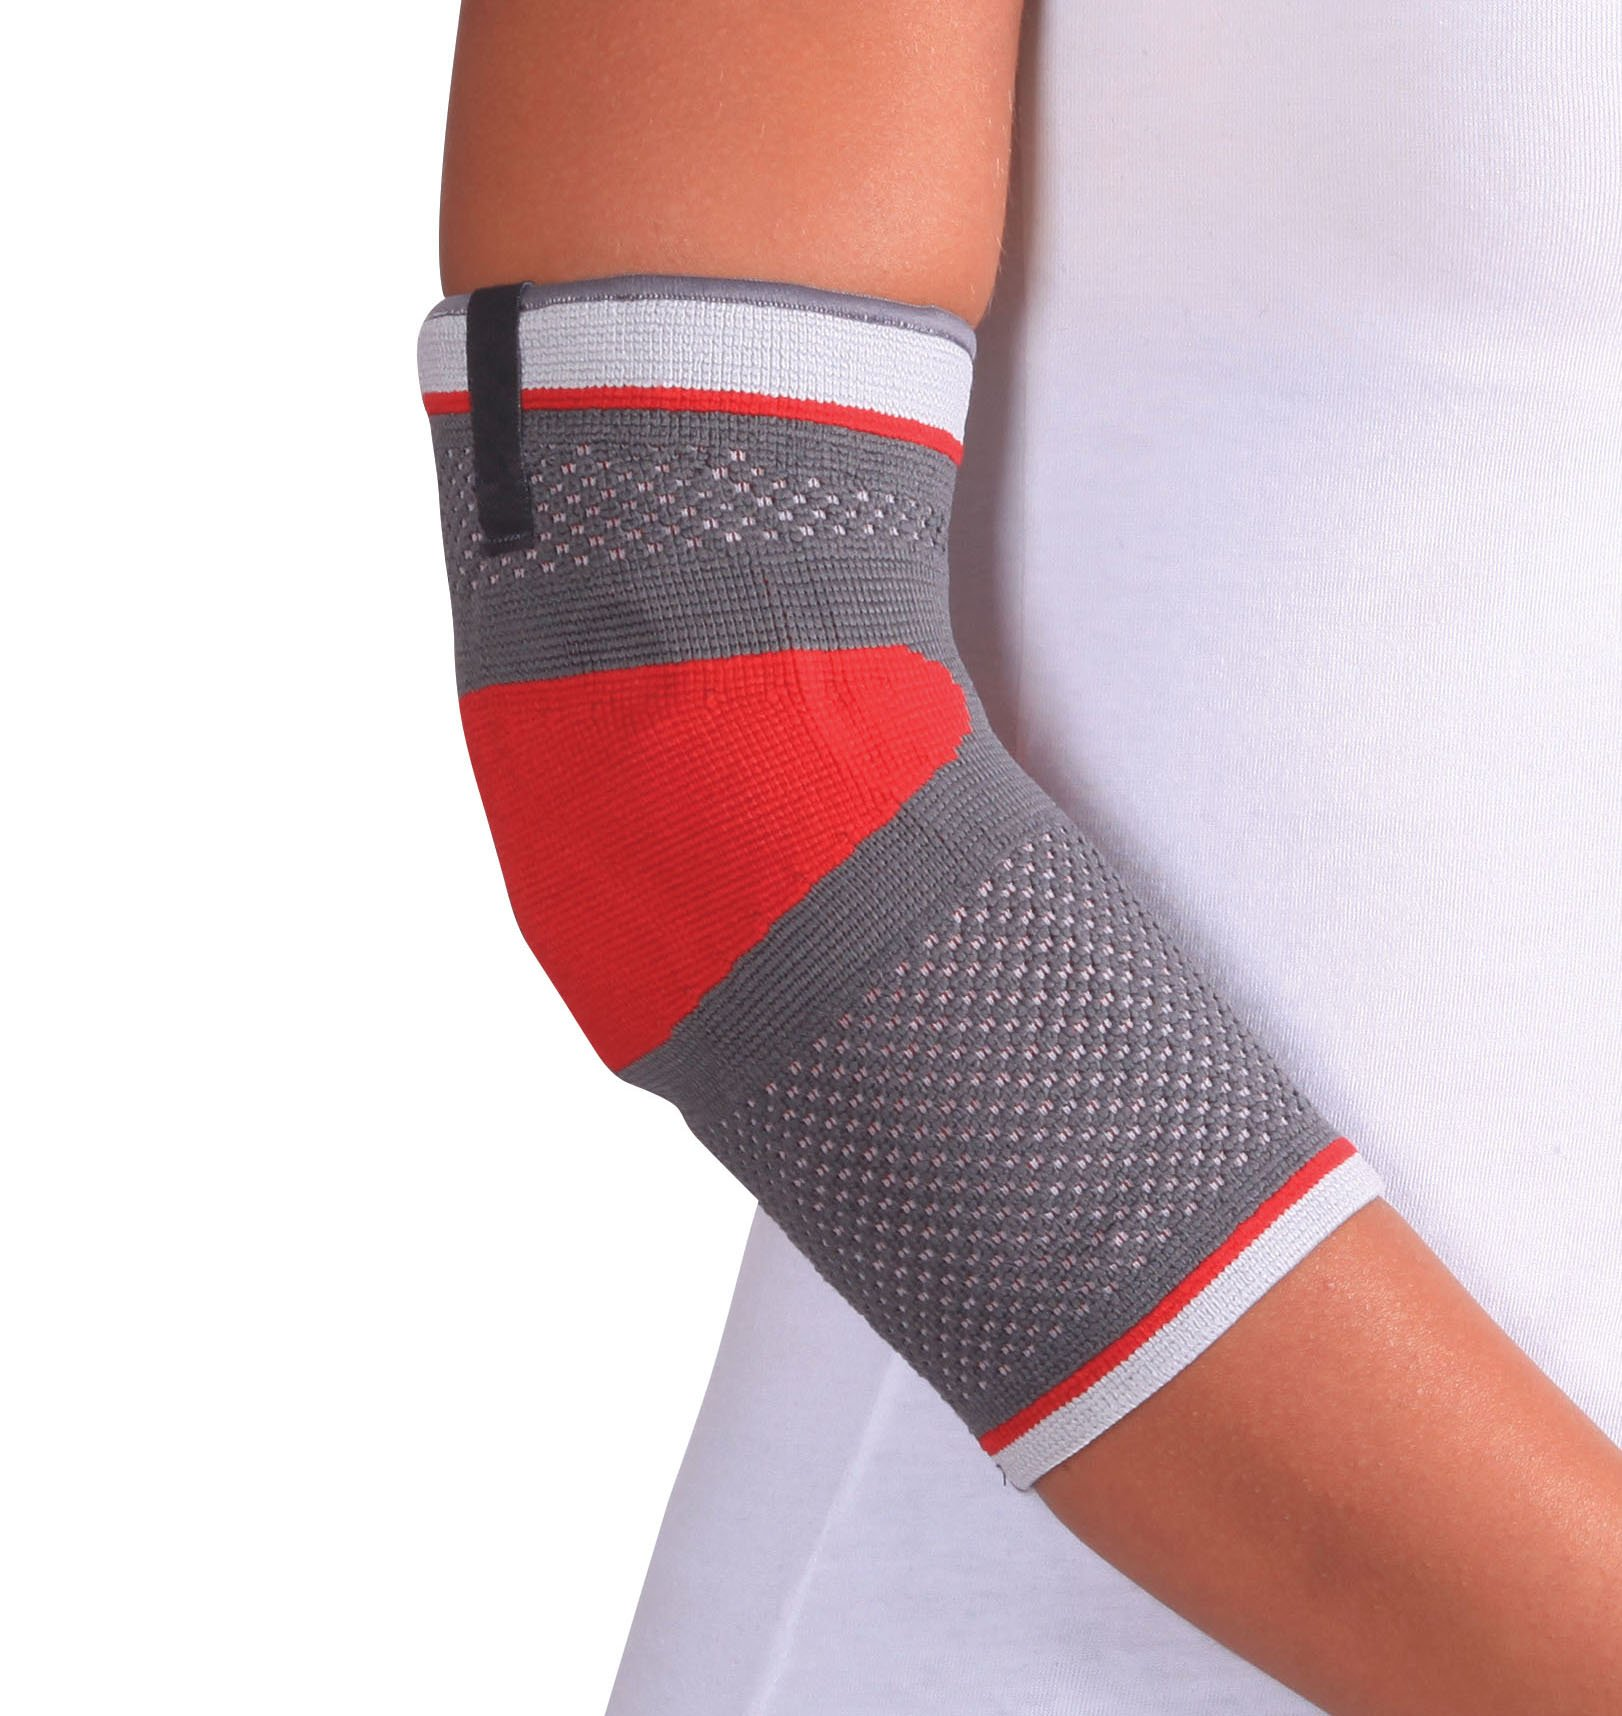 ORTONYX Tennis Elbow Support Brace Compression Sleeve - L Gray/Red